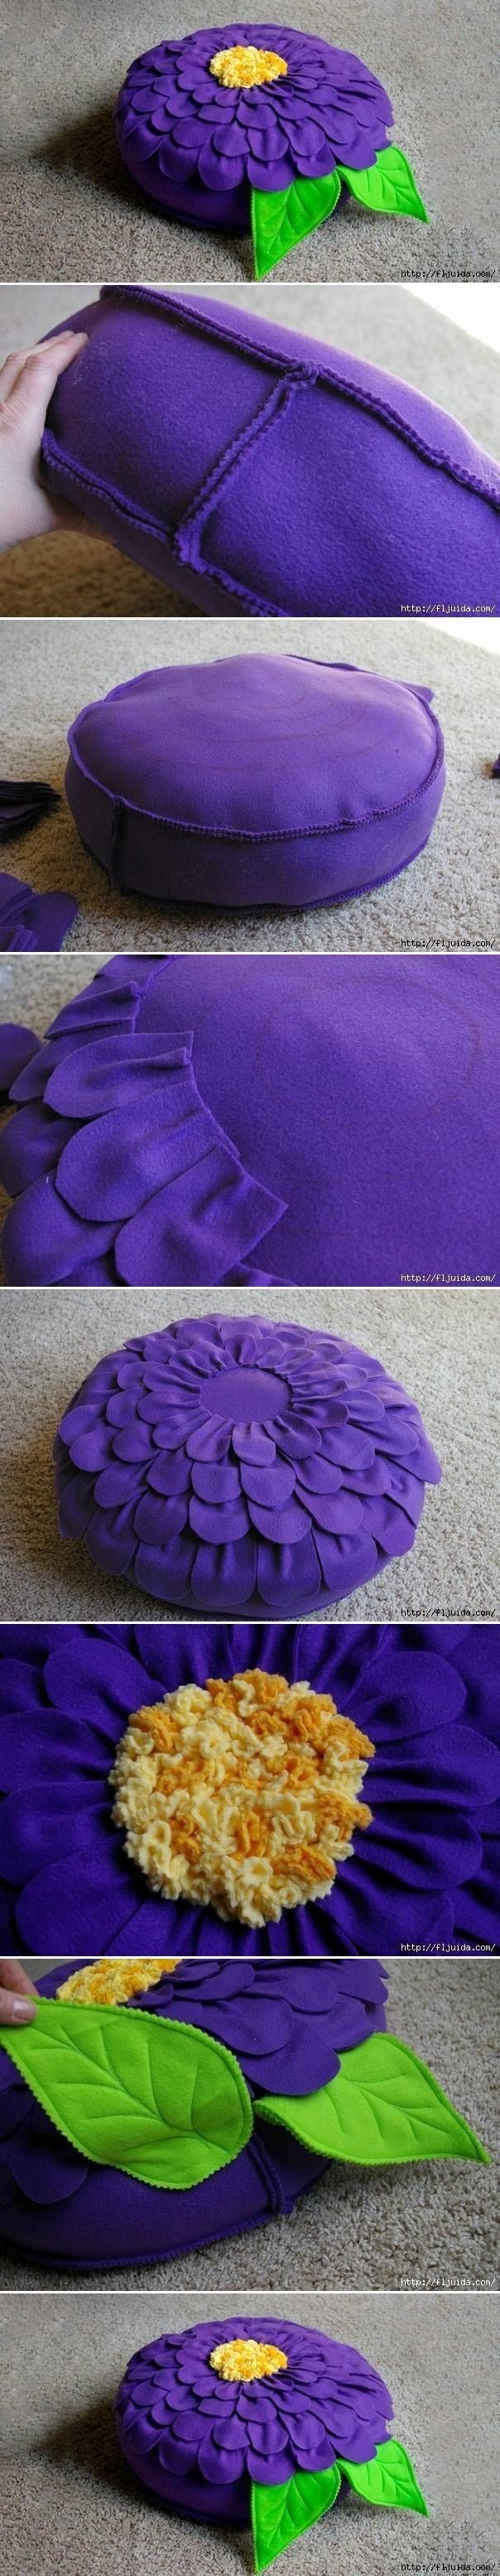 DIY Beautiful Flower Cushion flower beautiful diy crafts DIY home made easy crafts craft idea crafts ideas flowers DIY ideas DIY crafts DIY idea do it yourself flowers diy projects diy craft handmade diy ideas